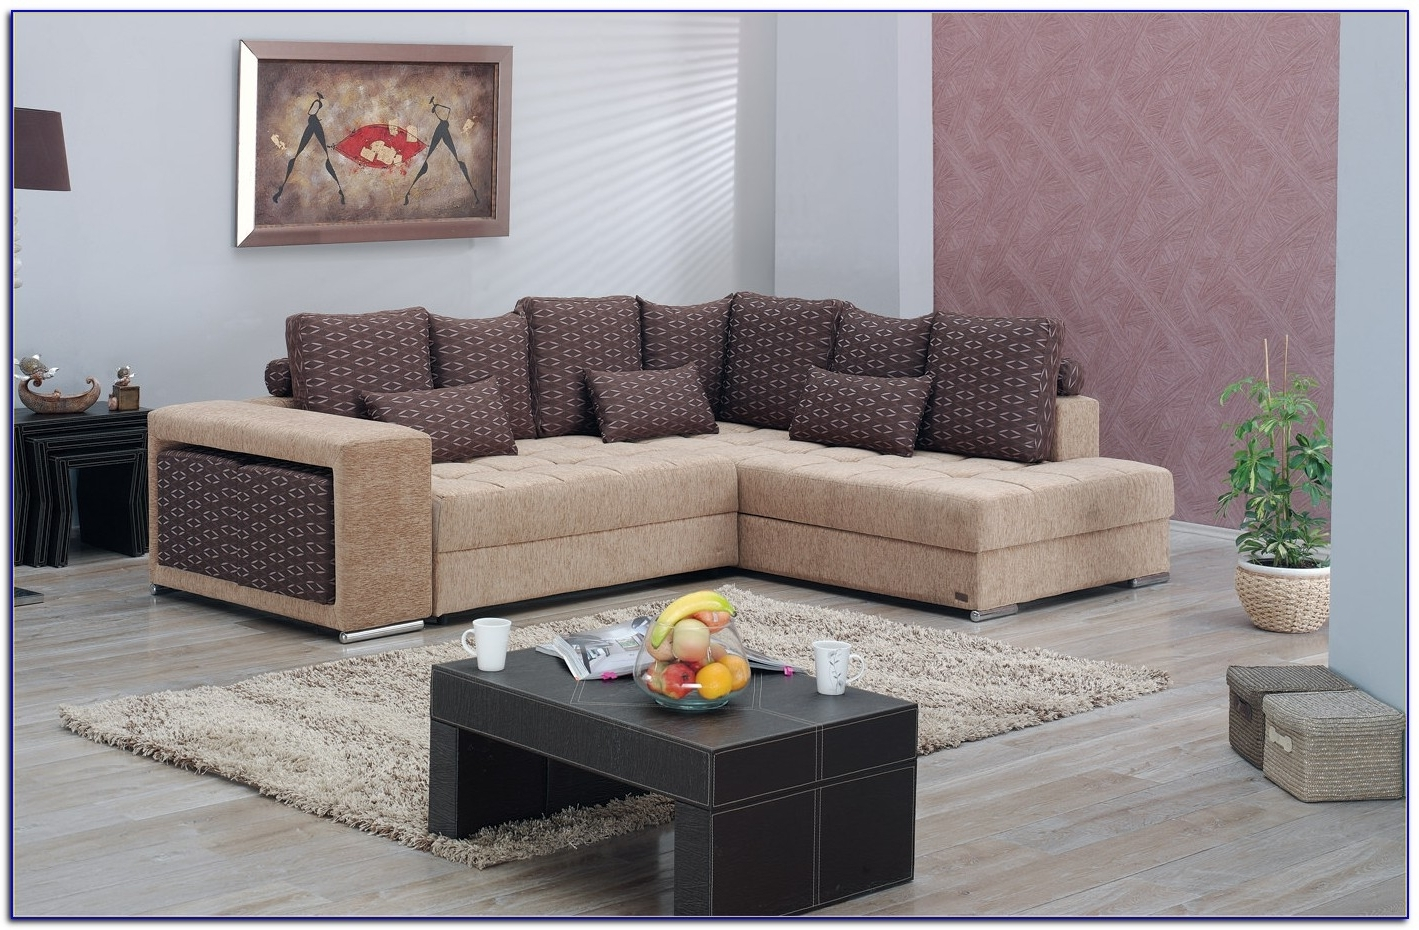 Attractive Fancy Kmart Sectional Sofa 82 For Sectional Sofas Ct With Kmart With Well  Known Kmart Sectional